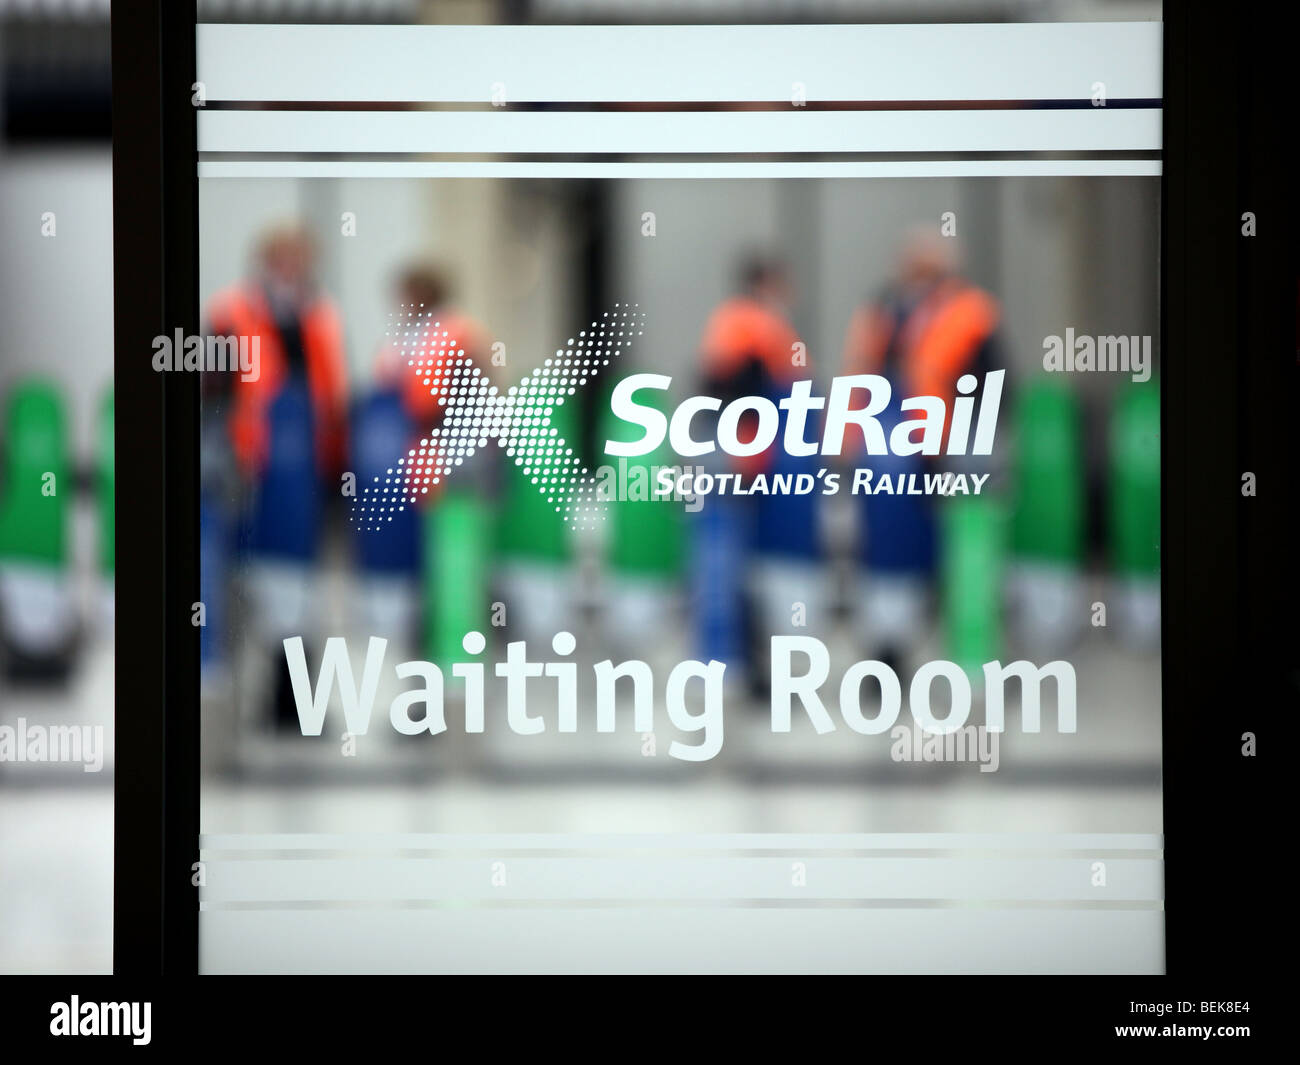 Window of Scotrail waiting room at Aberdeen railway station, Scotland, UK - Stock Image